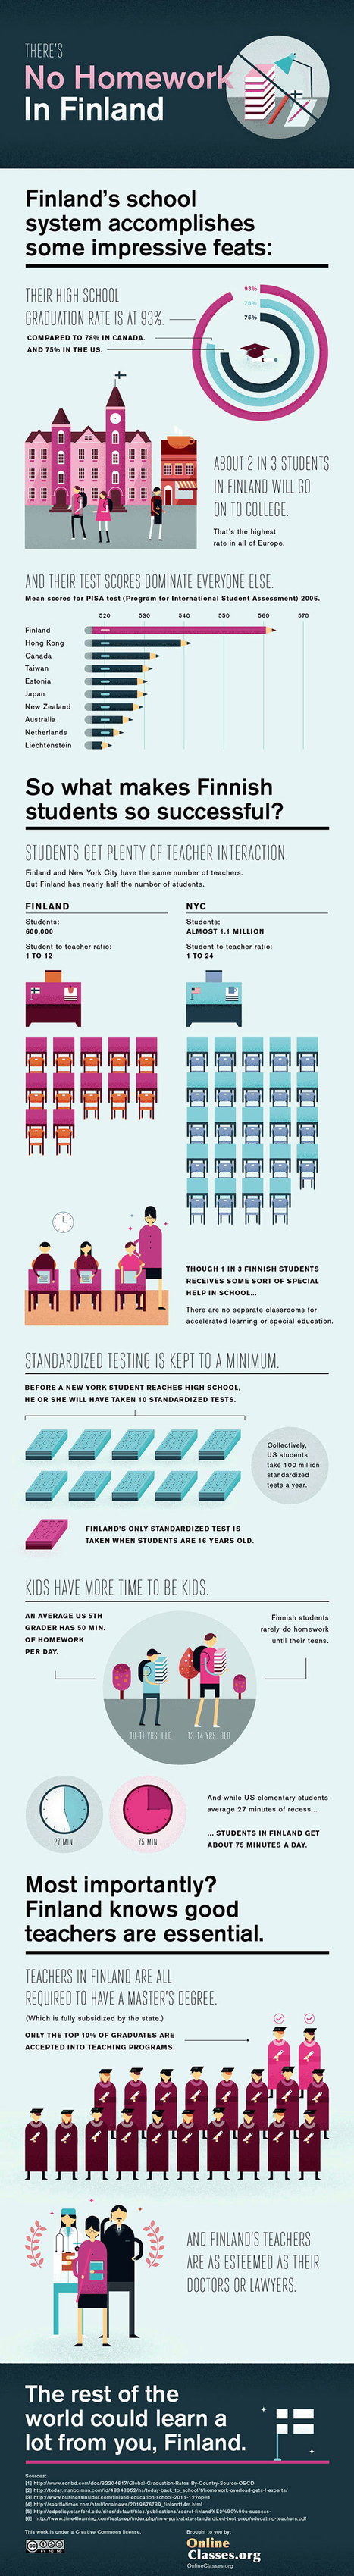 Finland's School System - Infographic | Secular Curated News & Views | Scoop.it